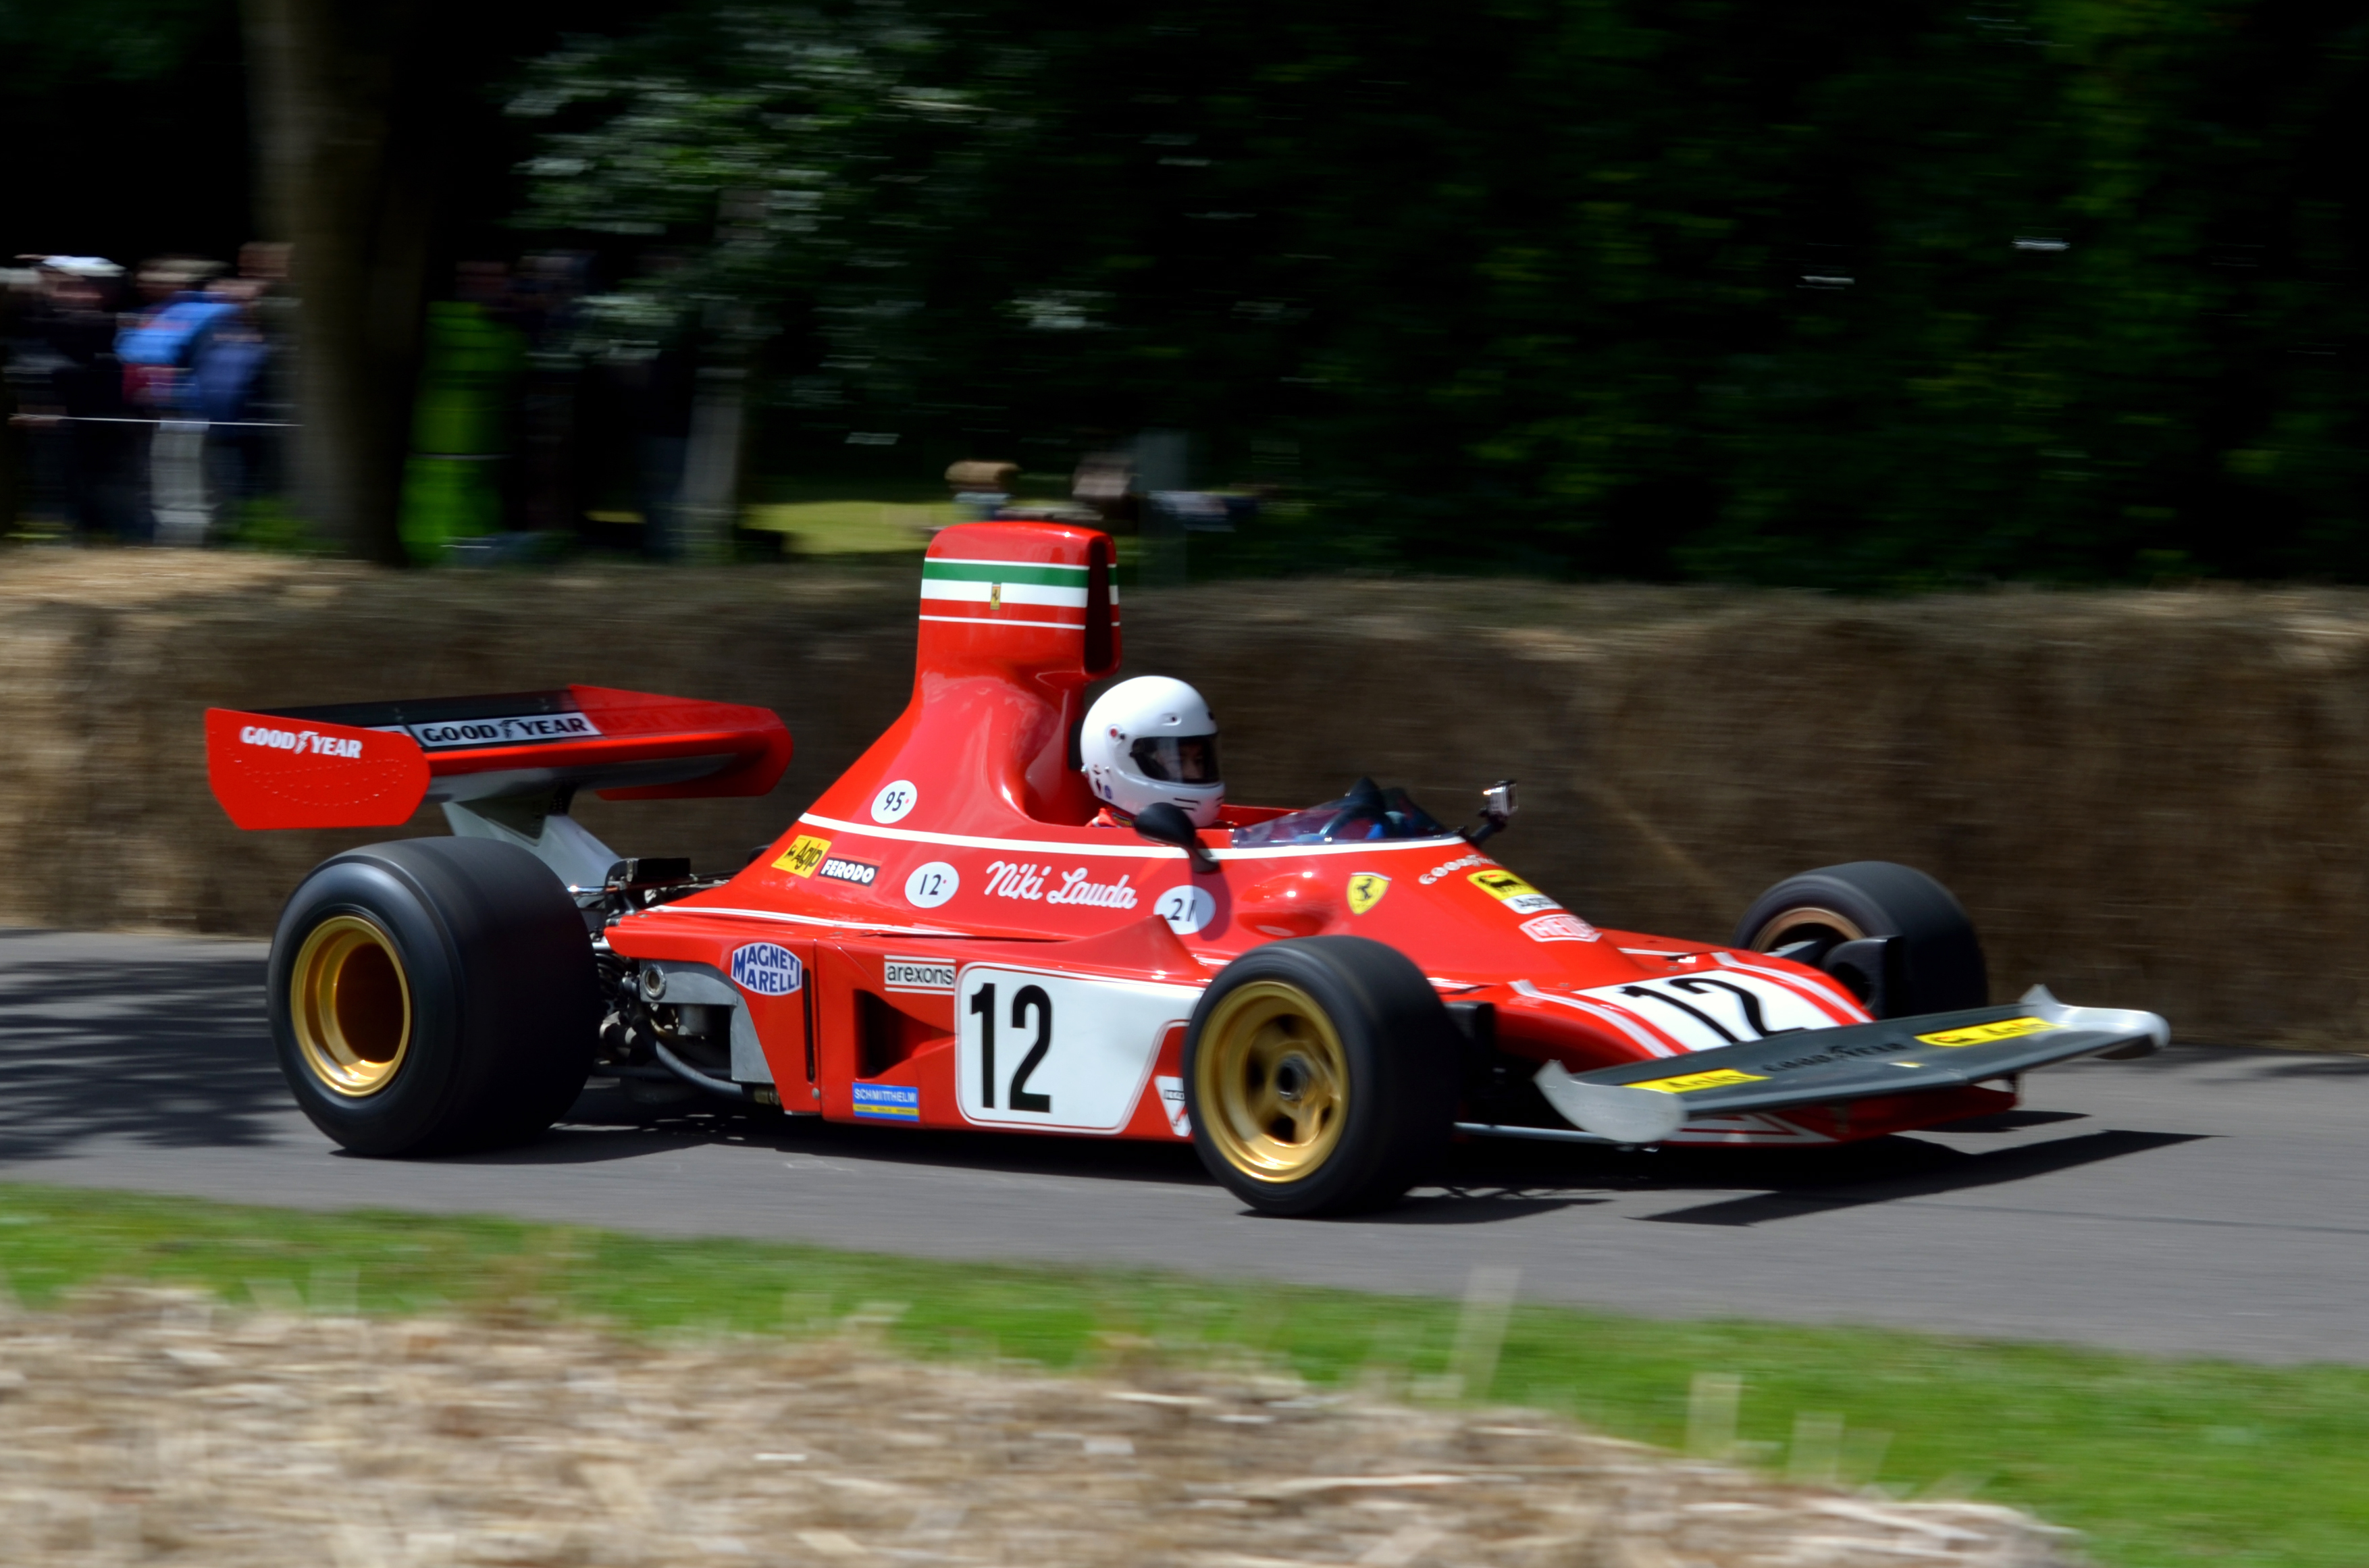 Build A Car >> File:Ferrari 312T at Goodwood 2012 (1).jpg - Wikimedia Commons